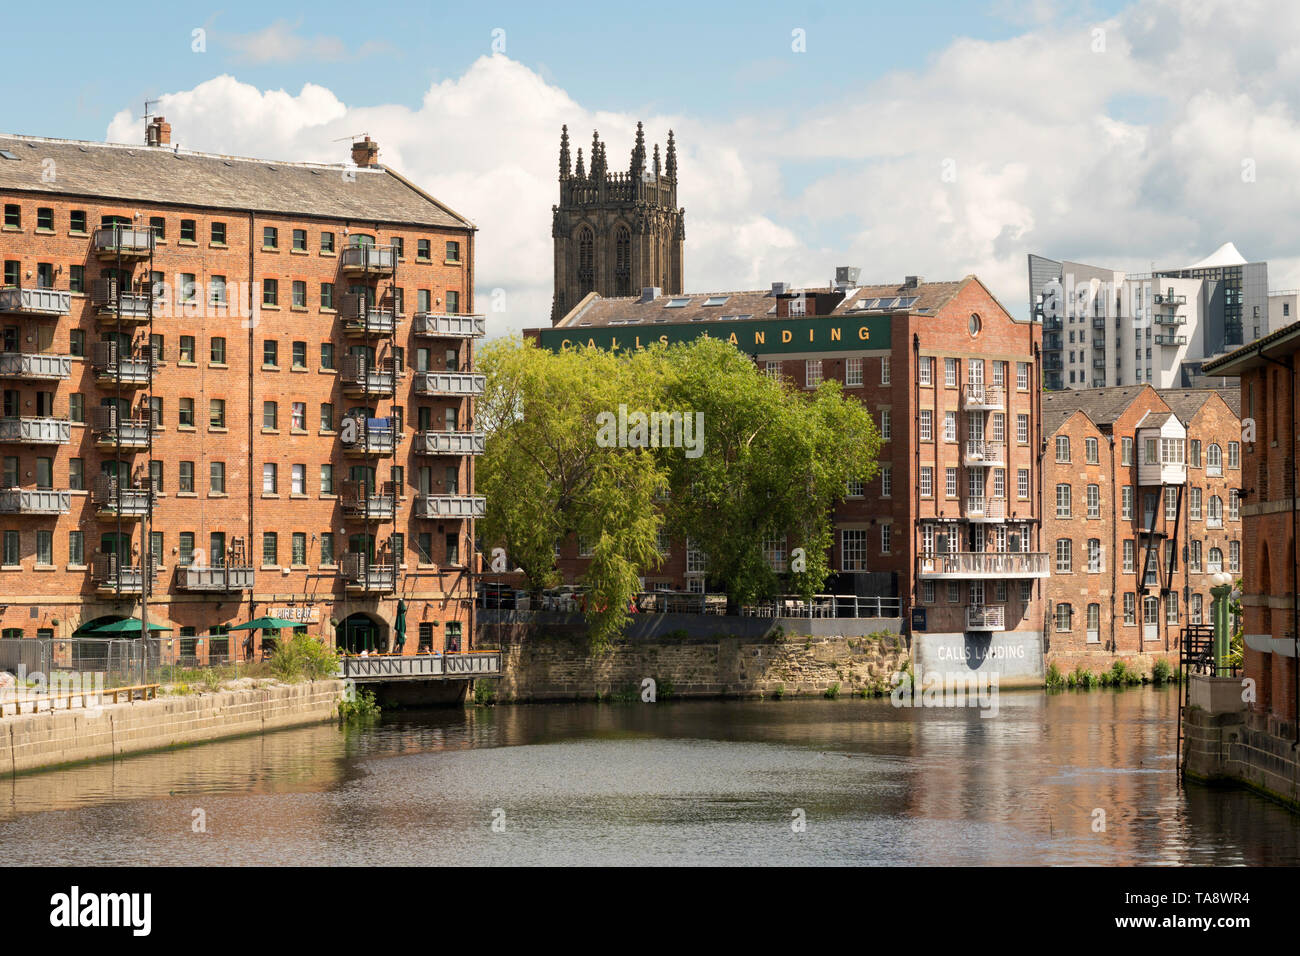 Warehouses converted into offices and apartments along the river Aire in  Leeds, Yorkshire, England, UK - Stock Image